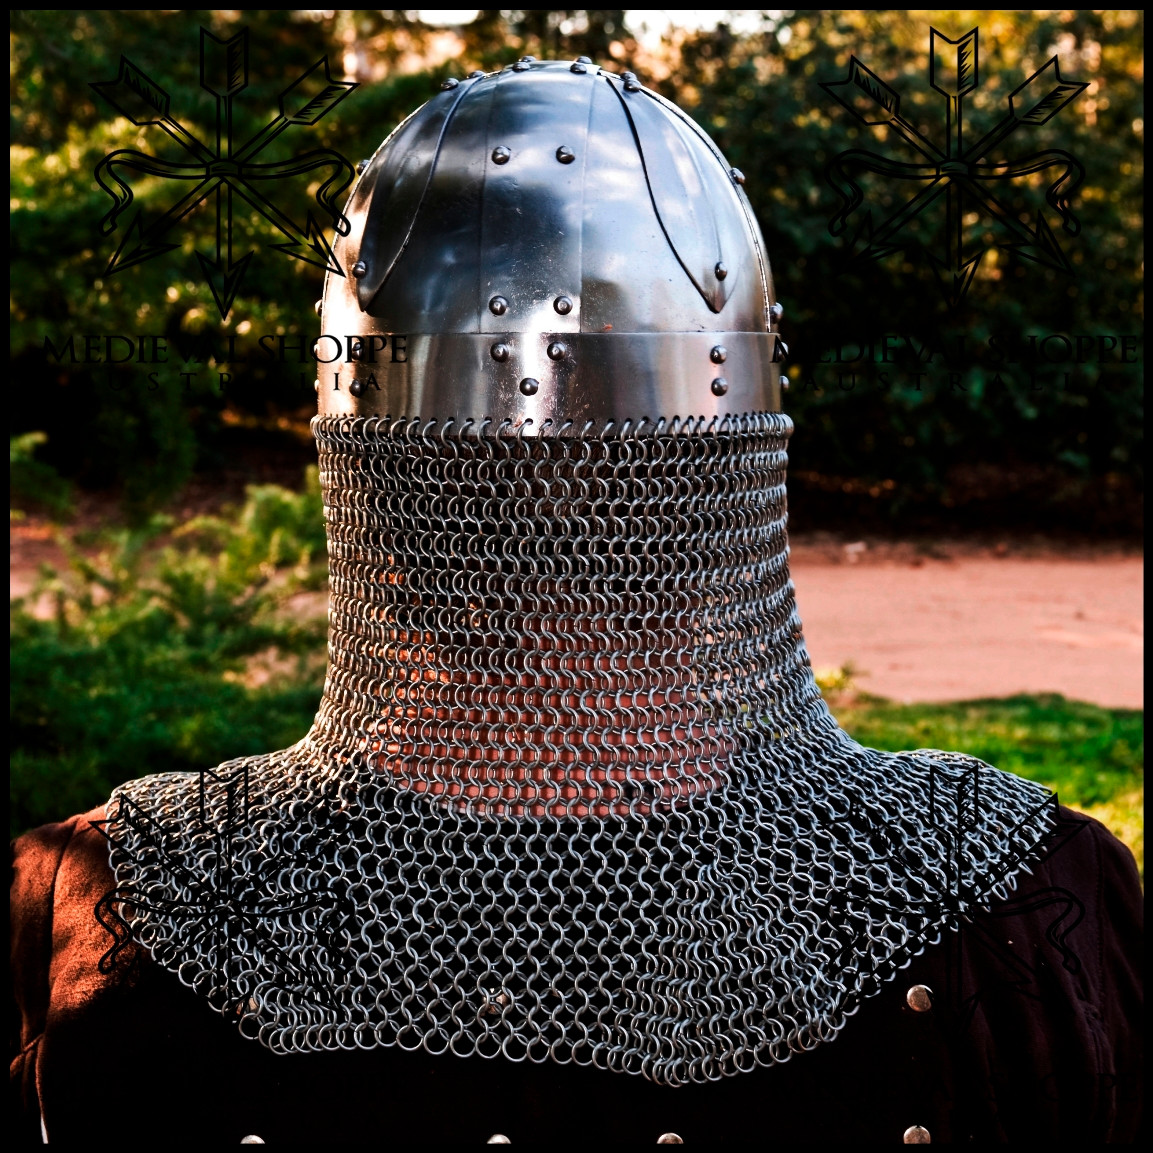 Viking Era Ocular Spangenhelm Helmet with Chain Mail Curtain